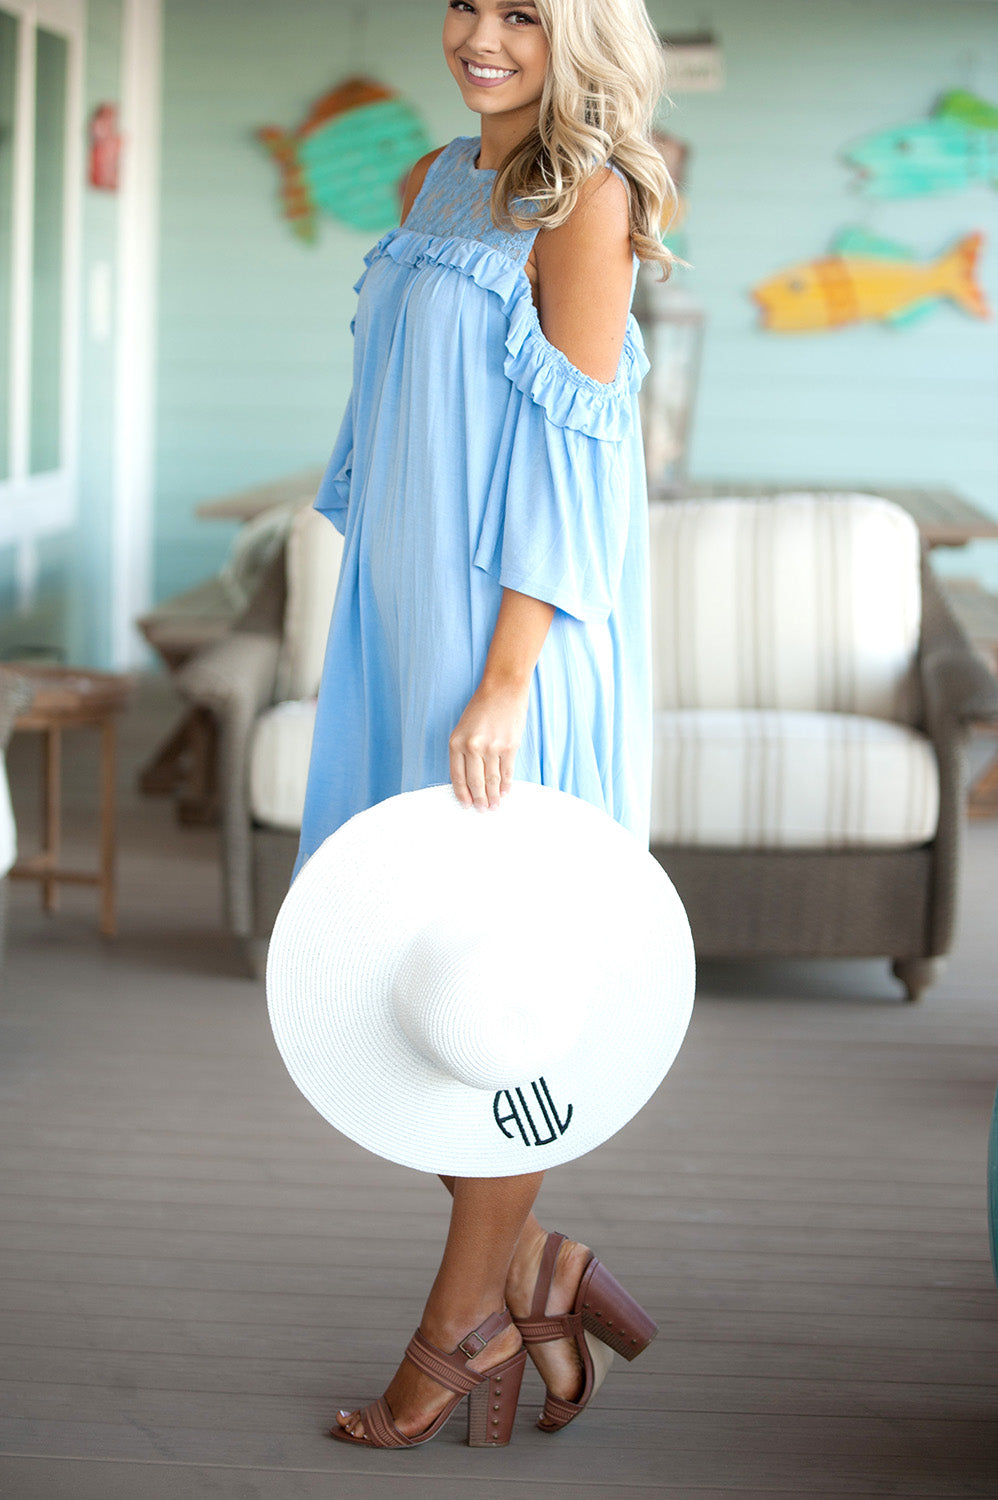 Monogrammed White Adult Floppy Hat